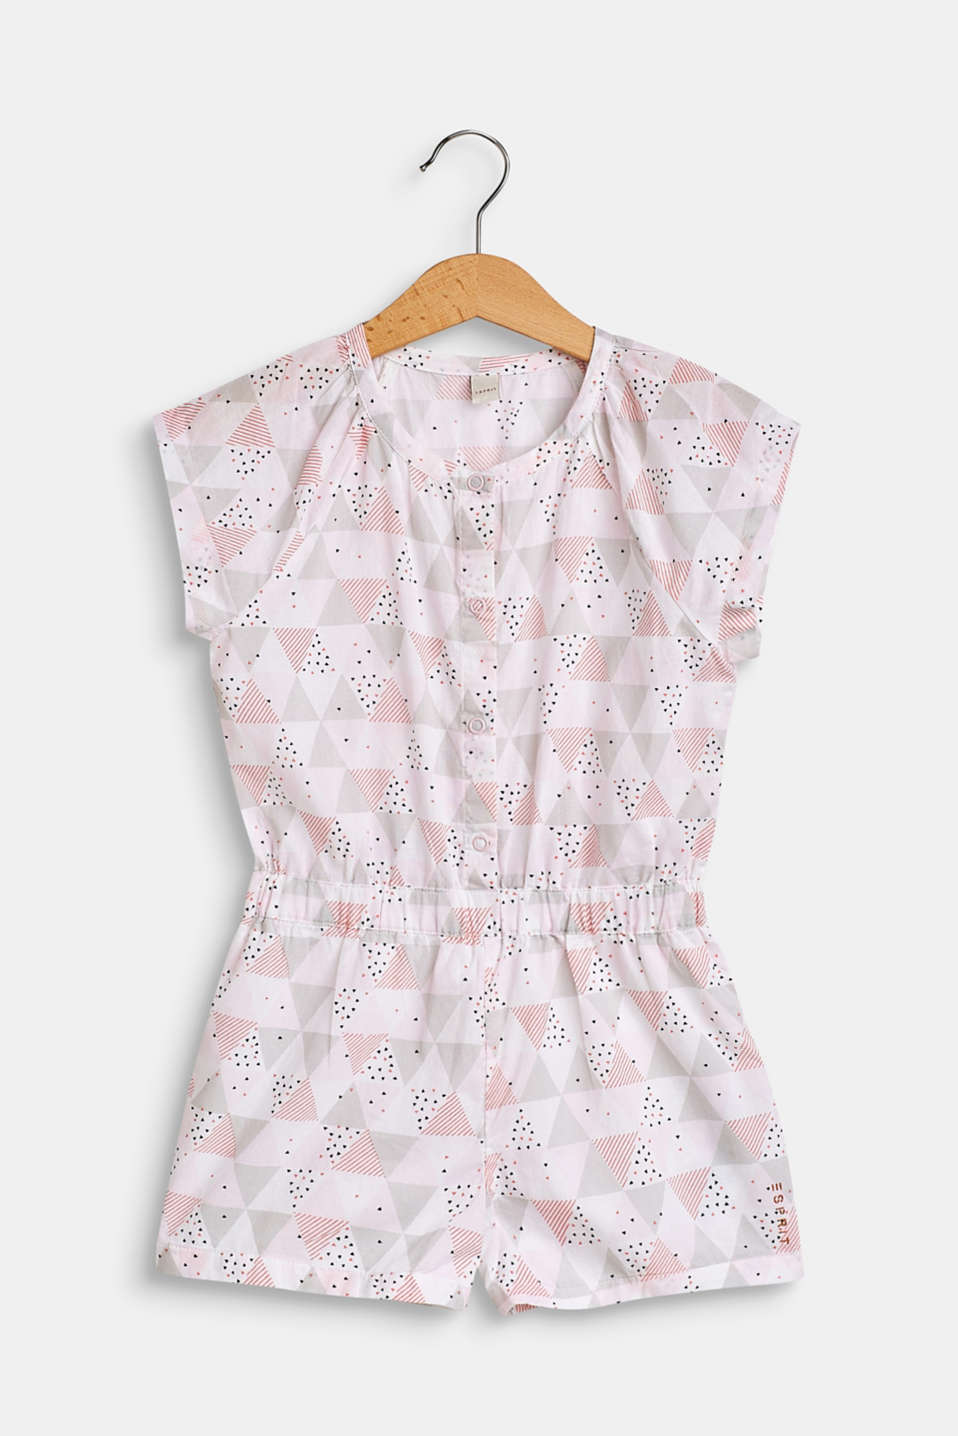 Esprit - Patterned jumpsuit in 100% cotton